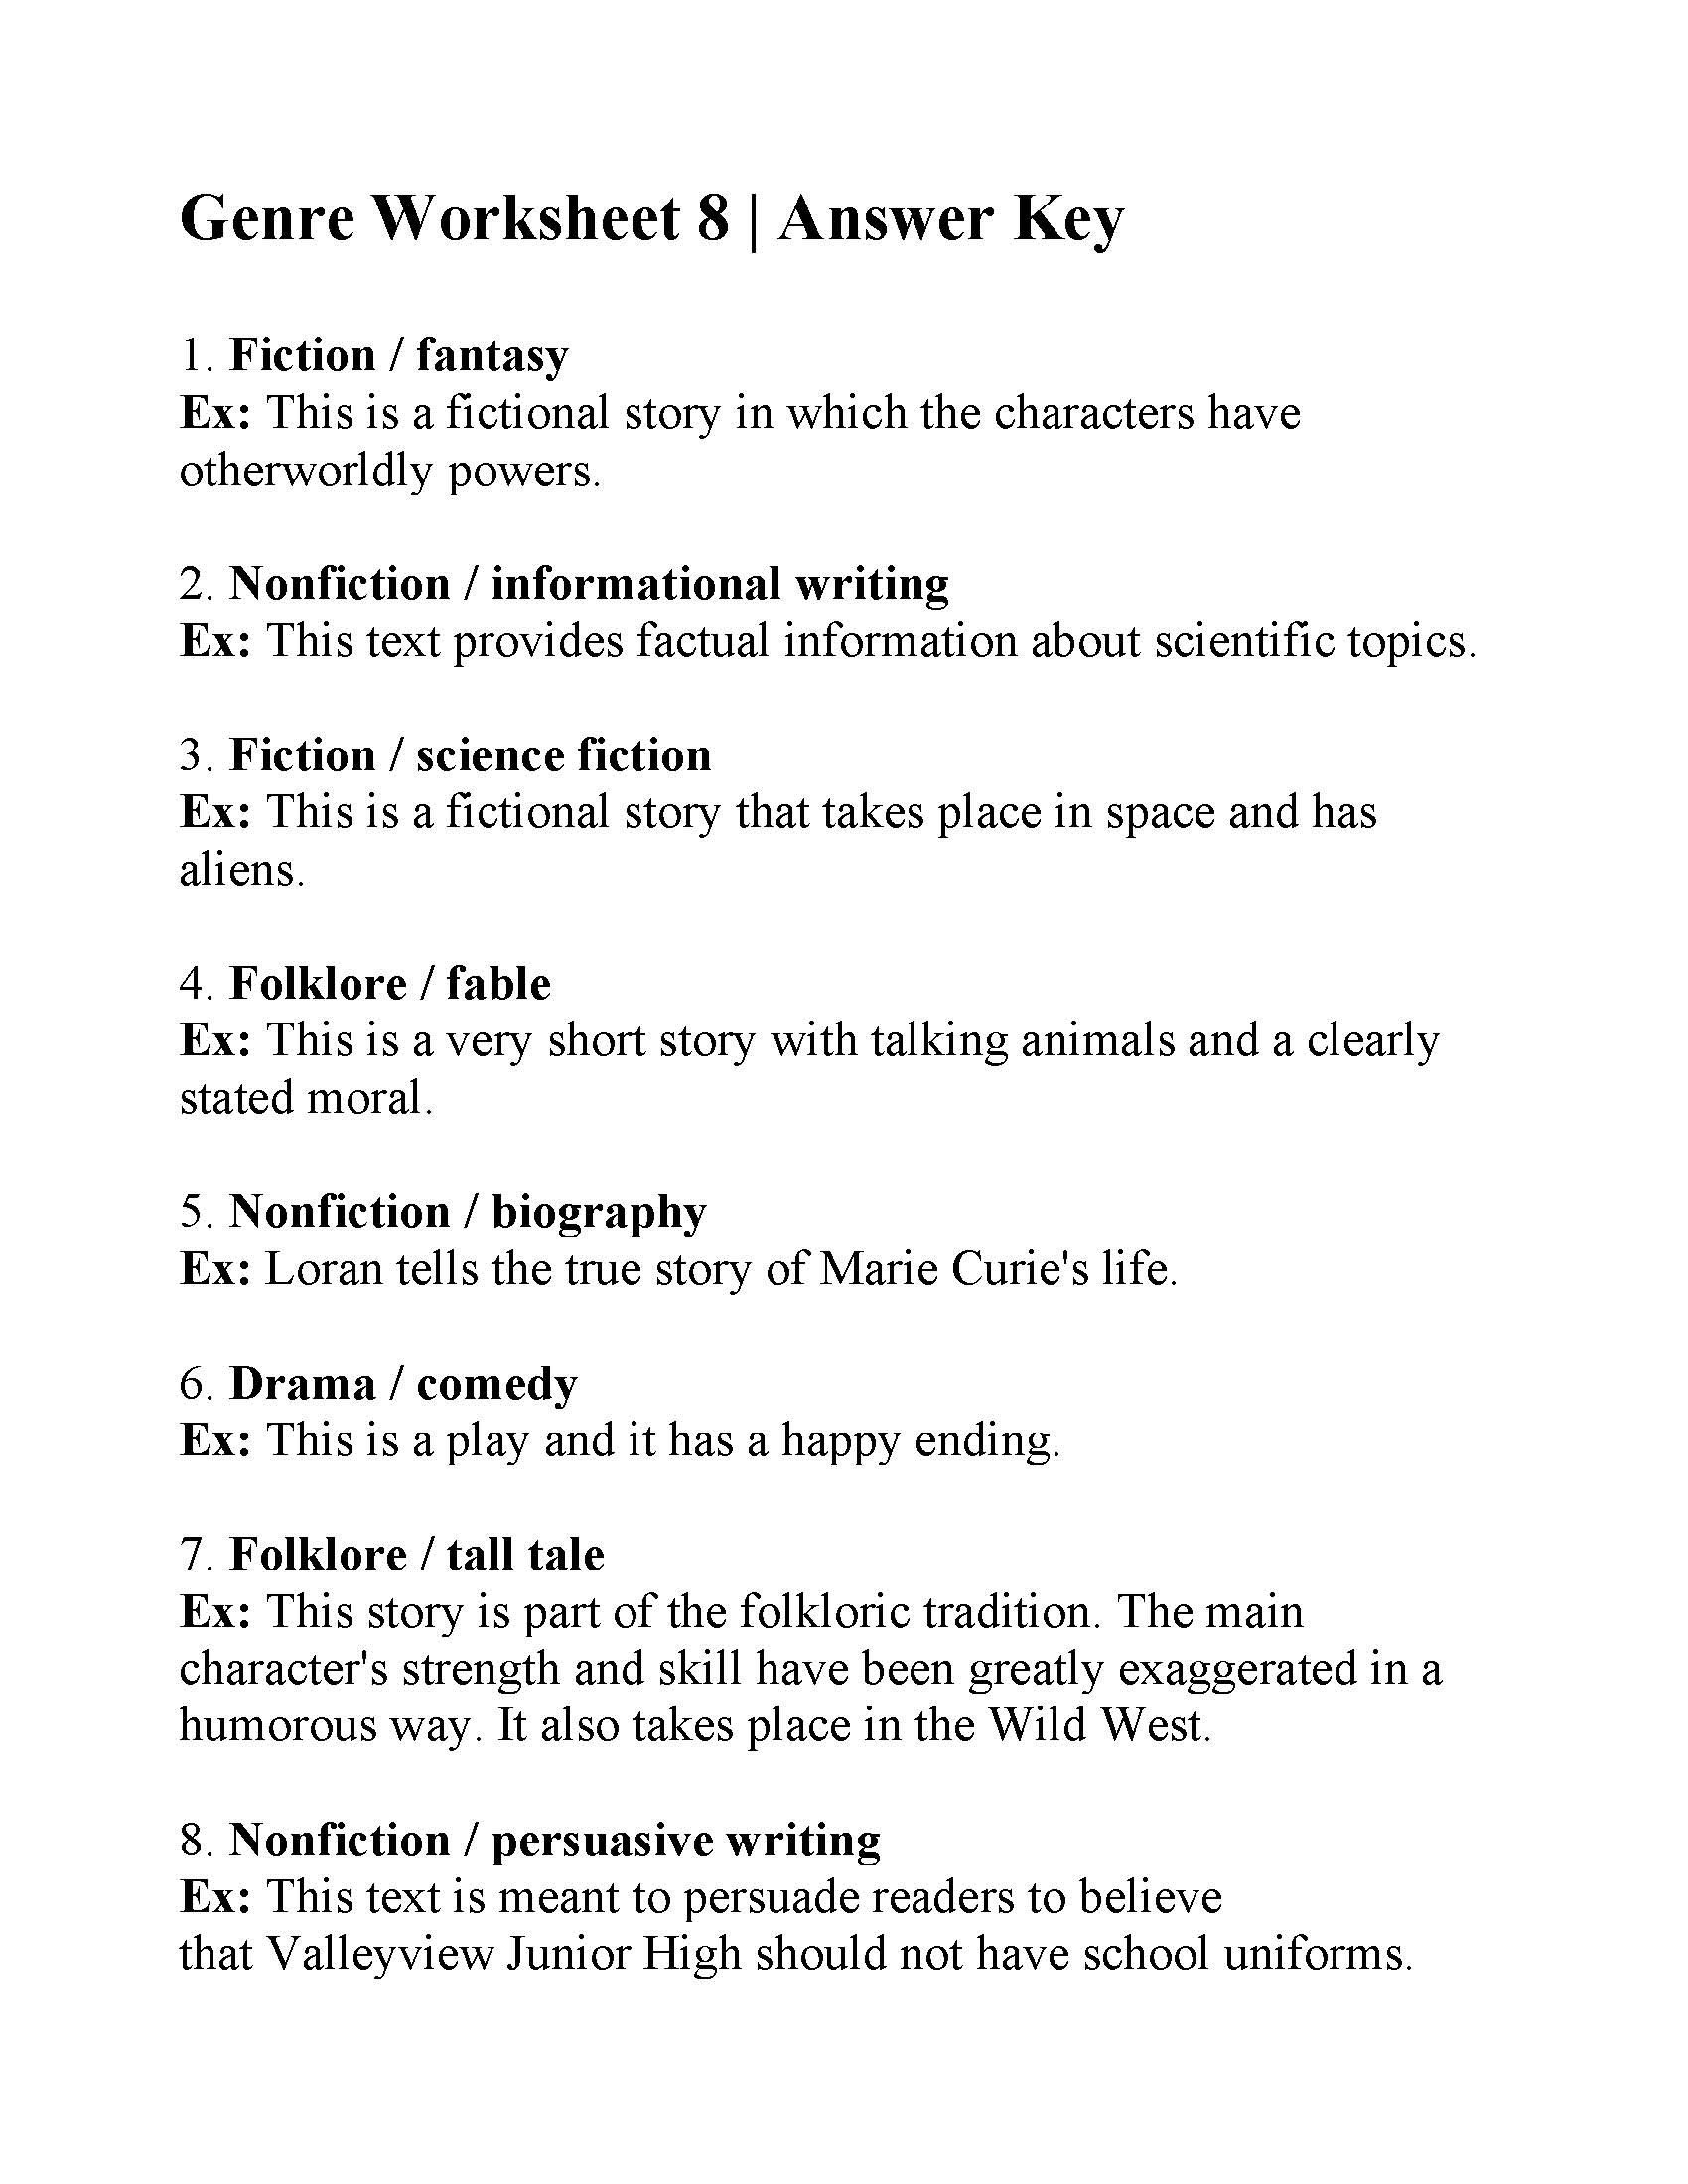 Teaching Genre Worksheets Genre Worksheet Answers Science Fiction Worksheets High